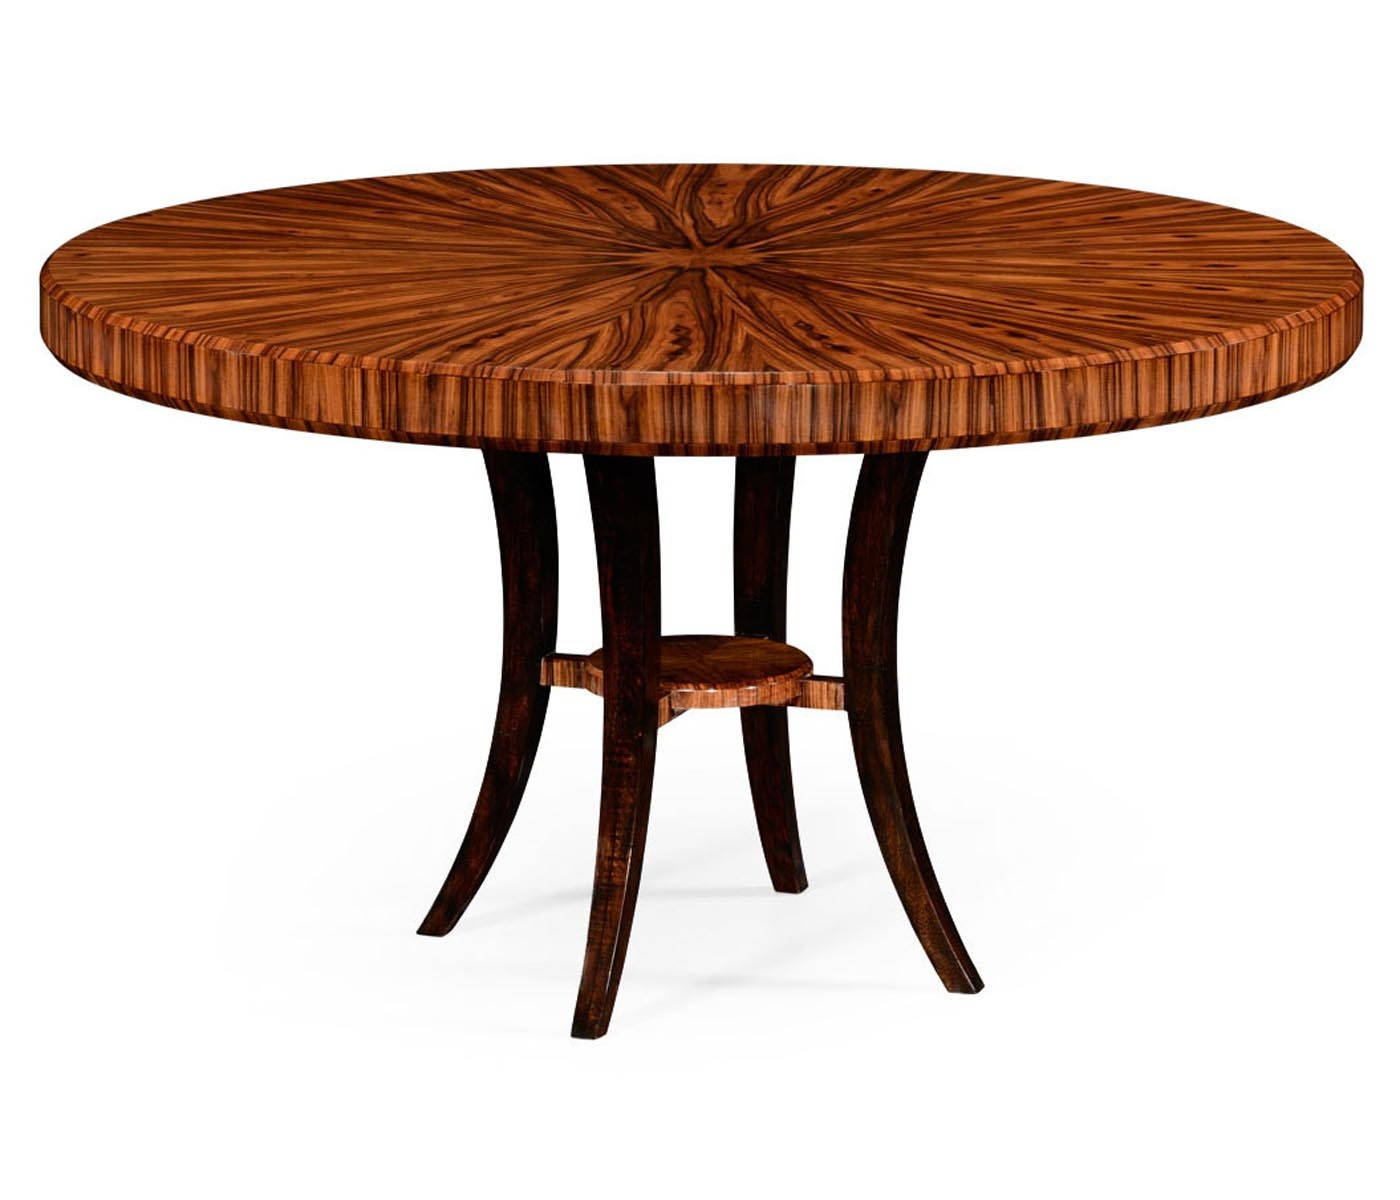 6 seater round dining table swanky interiors for Round dining table for 6